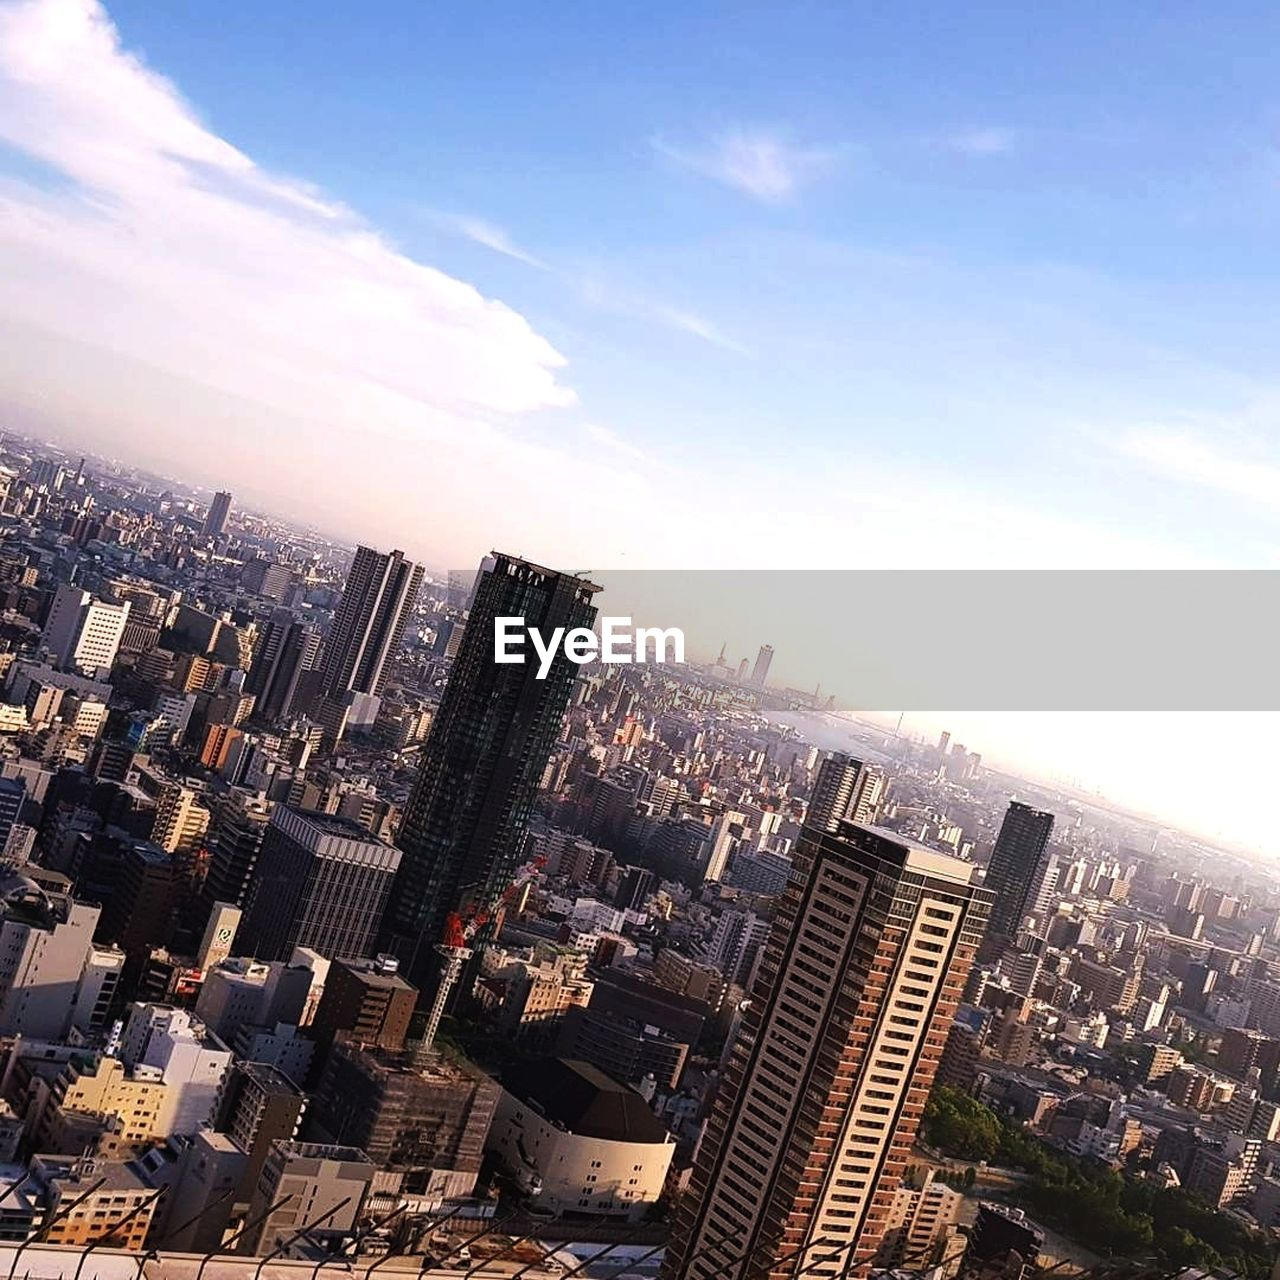 cityscape, architecture, skyscraper, city, building exterior, modern, built structure, skyline, high angle view, no people, travel destinations, city life, outdoors, day, urban skyline, sunlight, sky, aerial view, tall, downtown